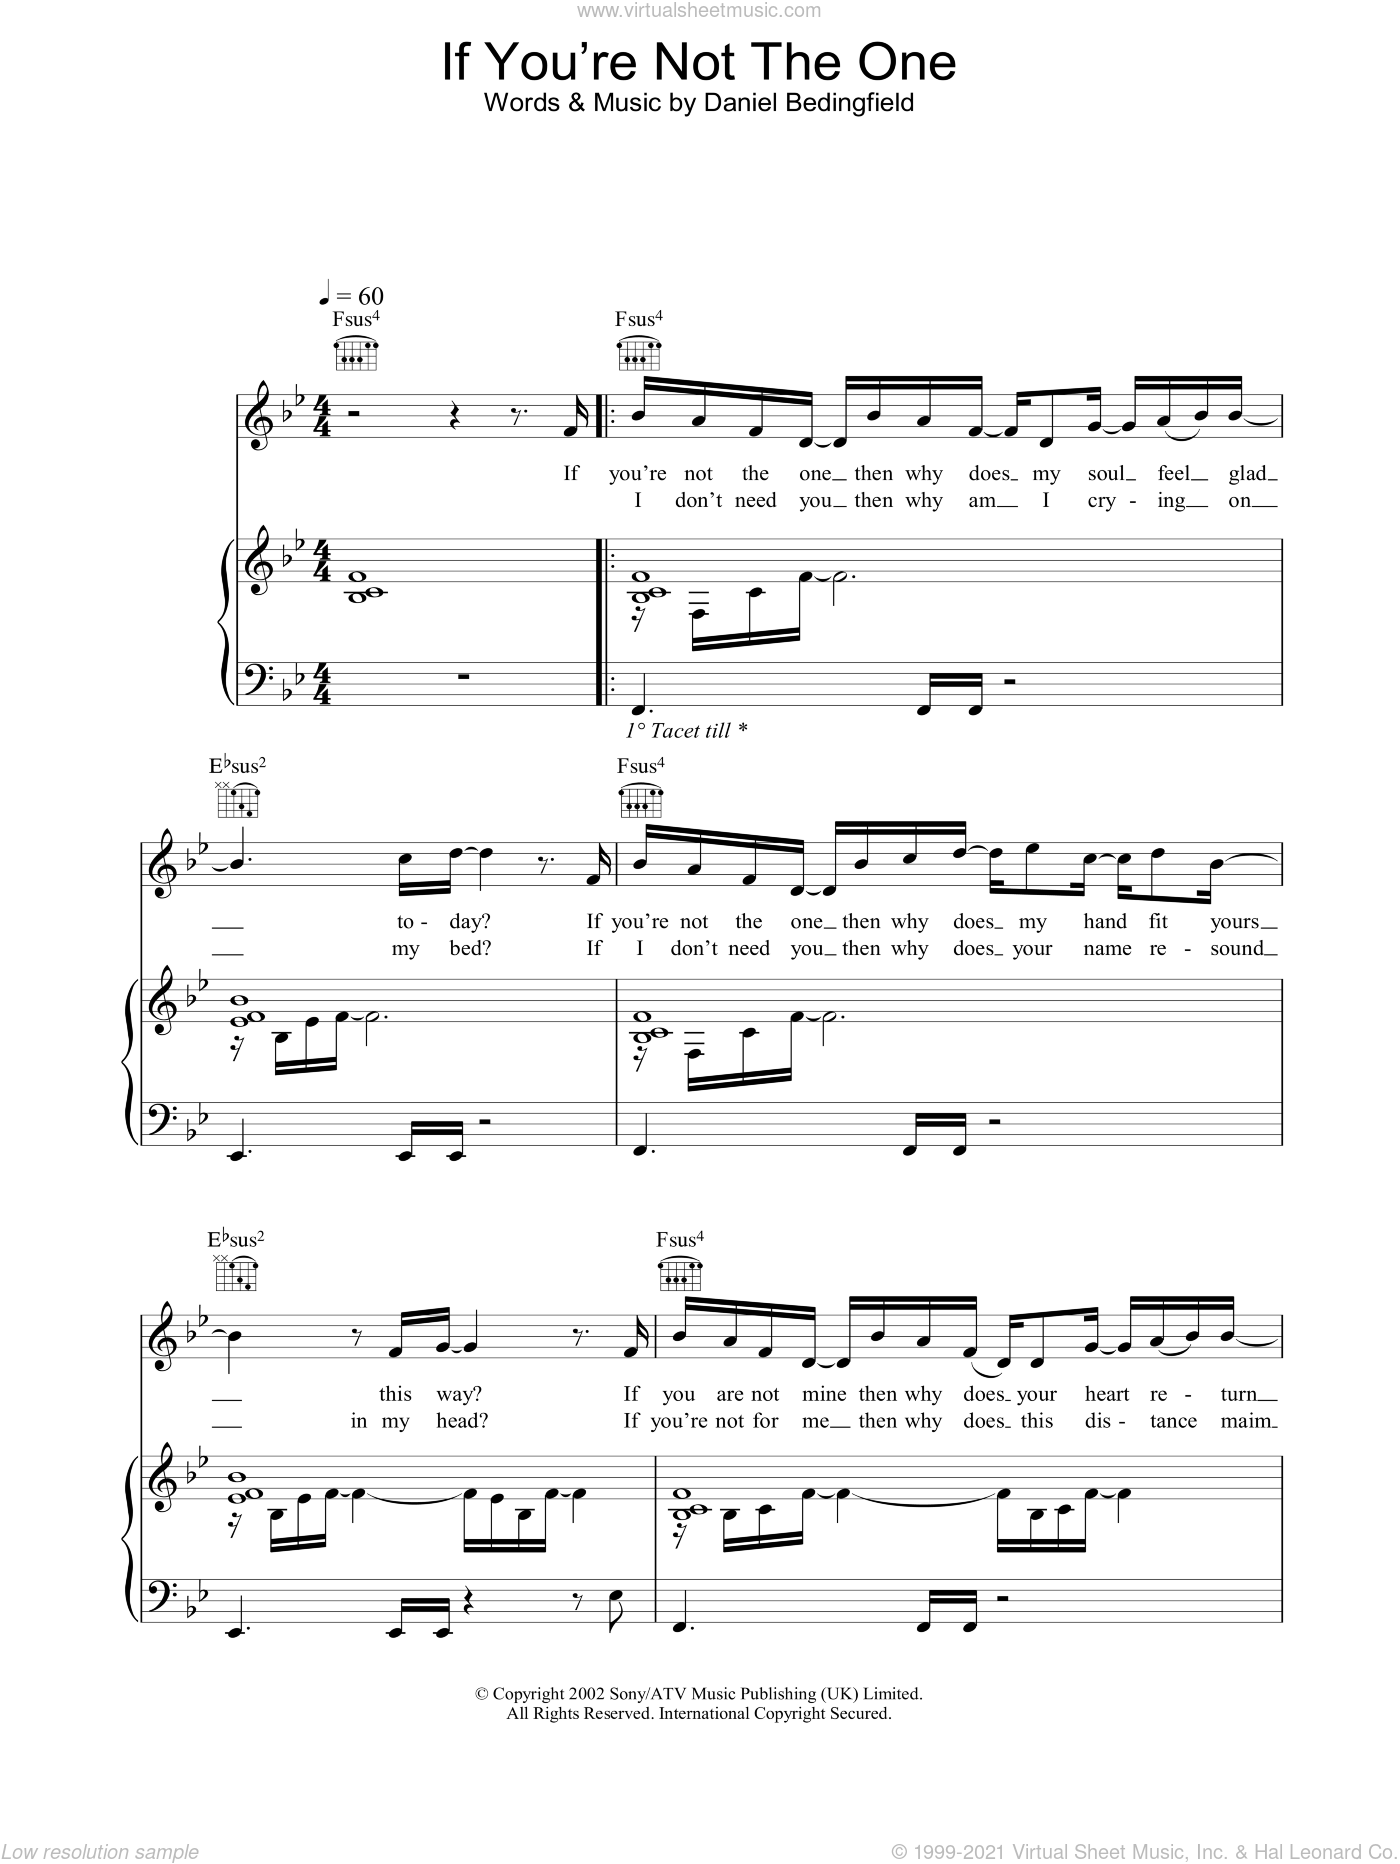 If You're Not The One sheet music for voice, piano or guitar by Daniel Bedingfield